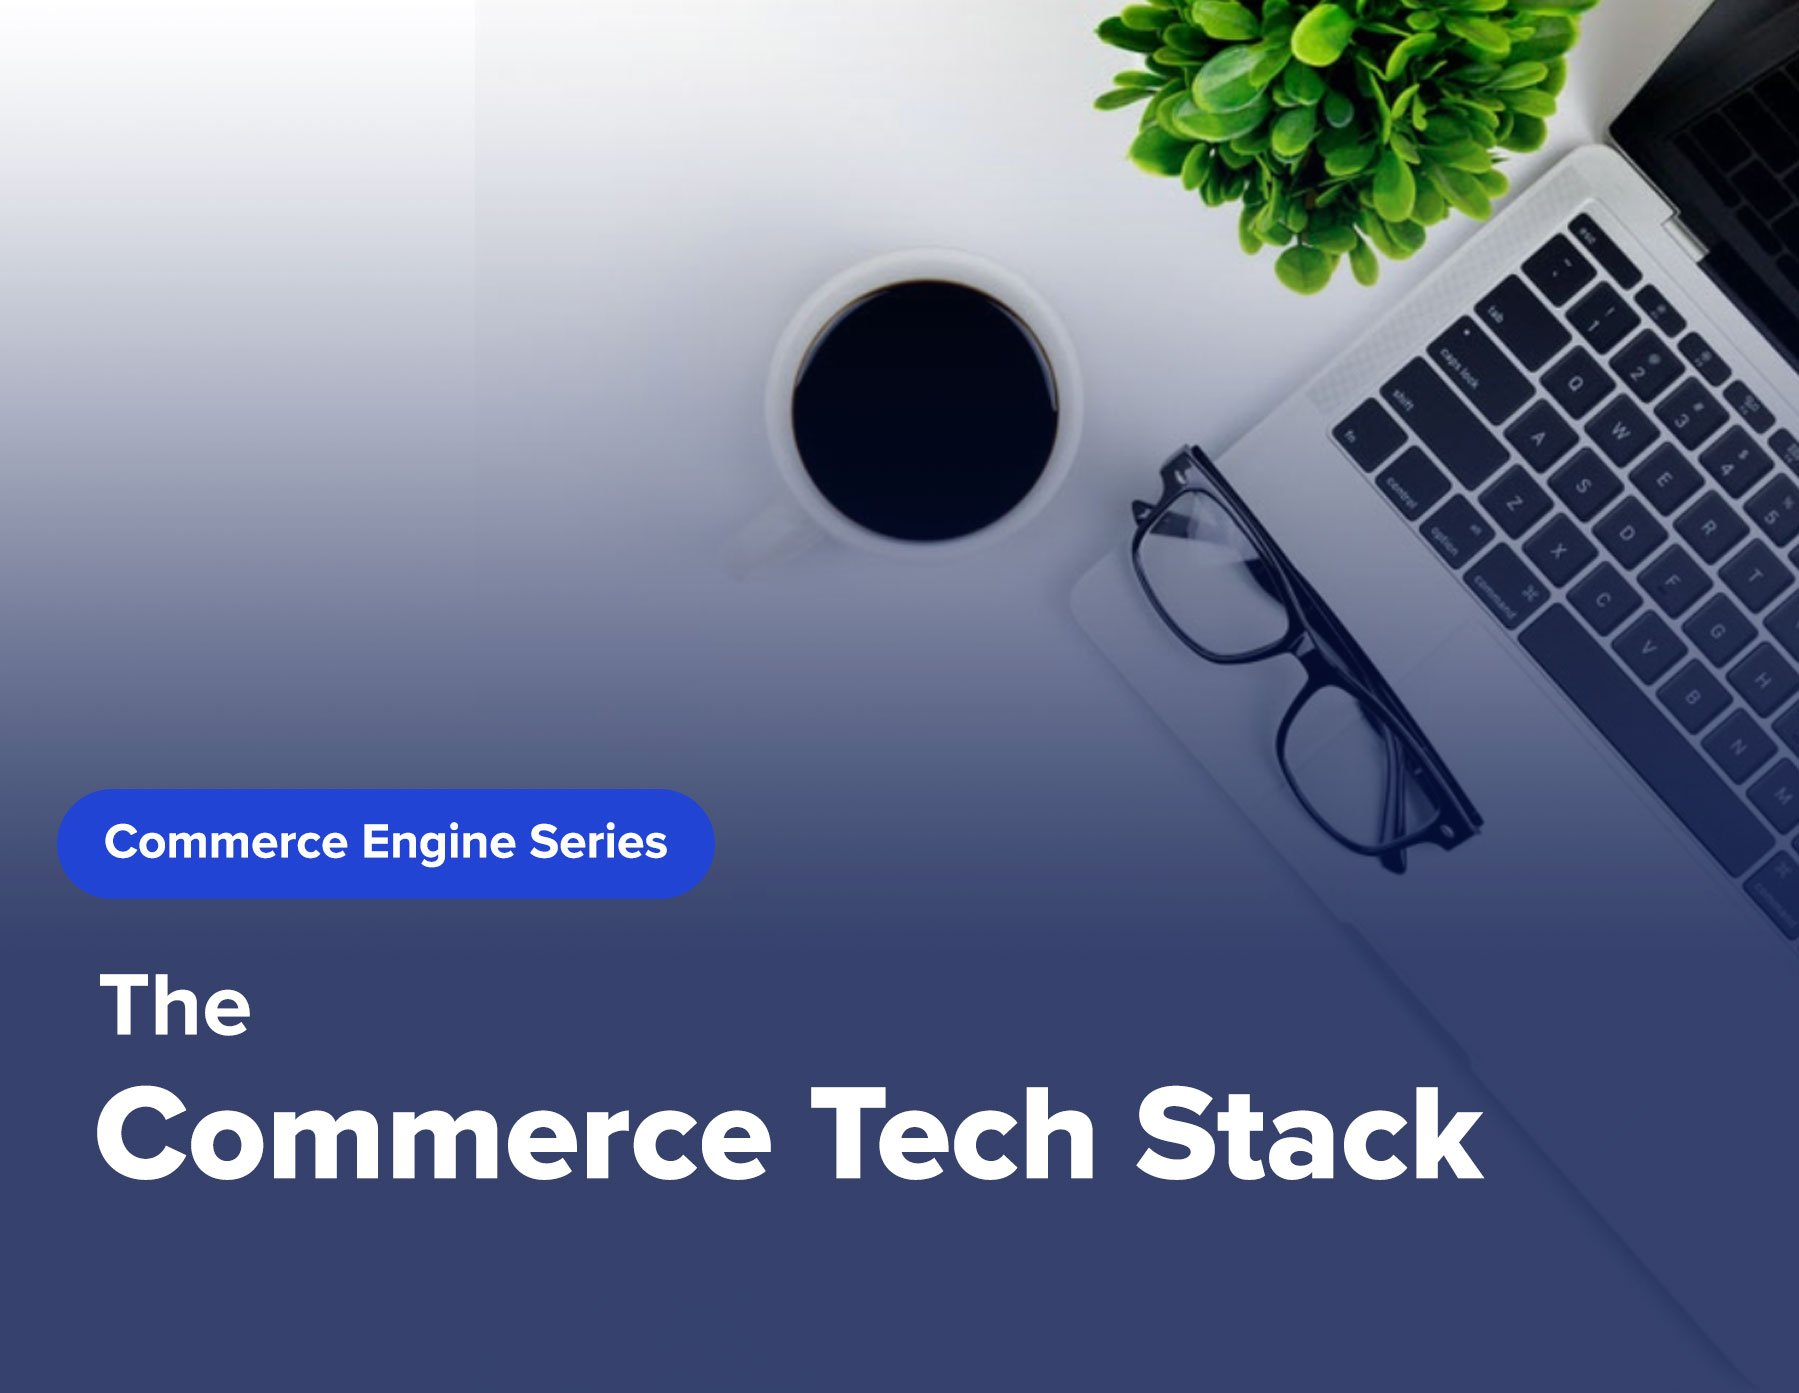 the Commerce Tech Stack